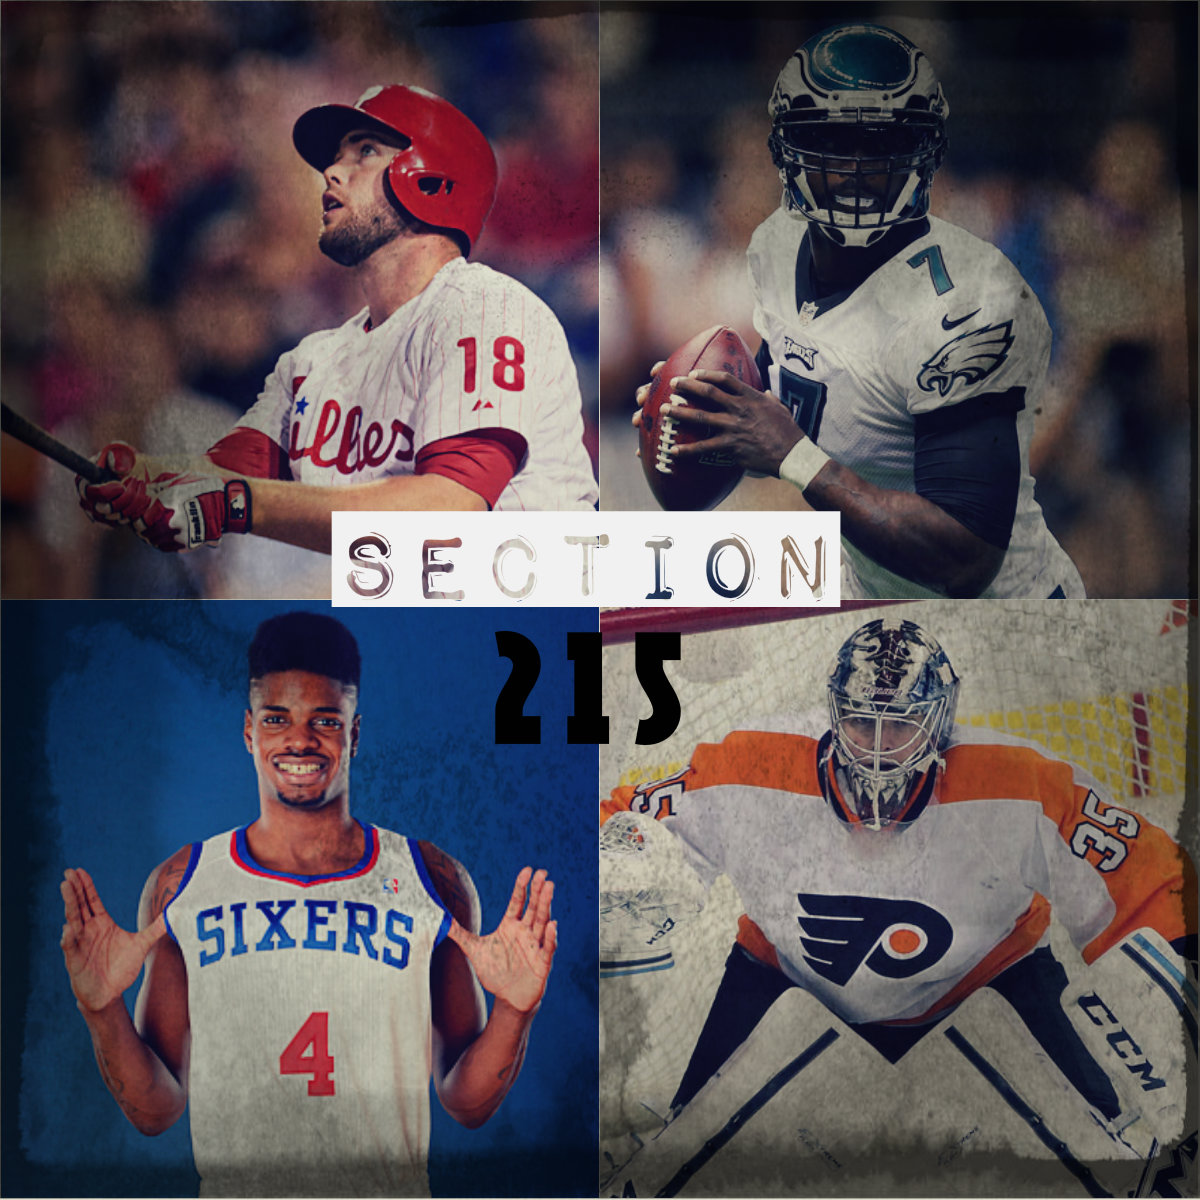 Section 215-A Philadelphia City Sports Blog